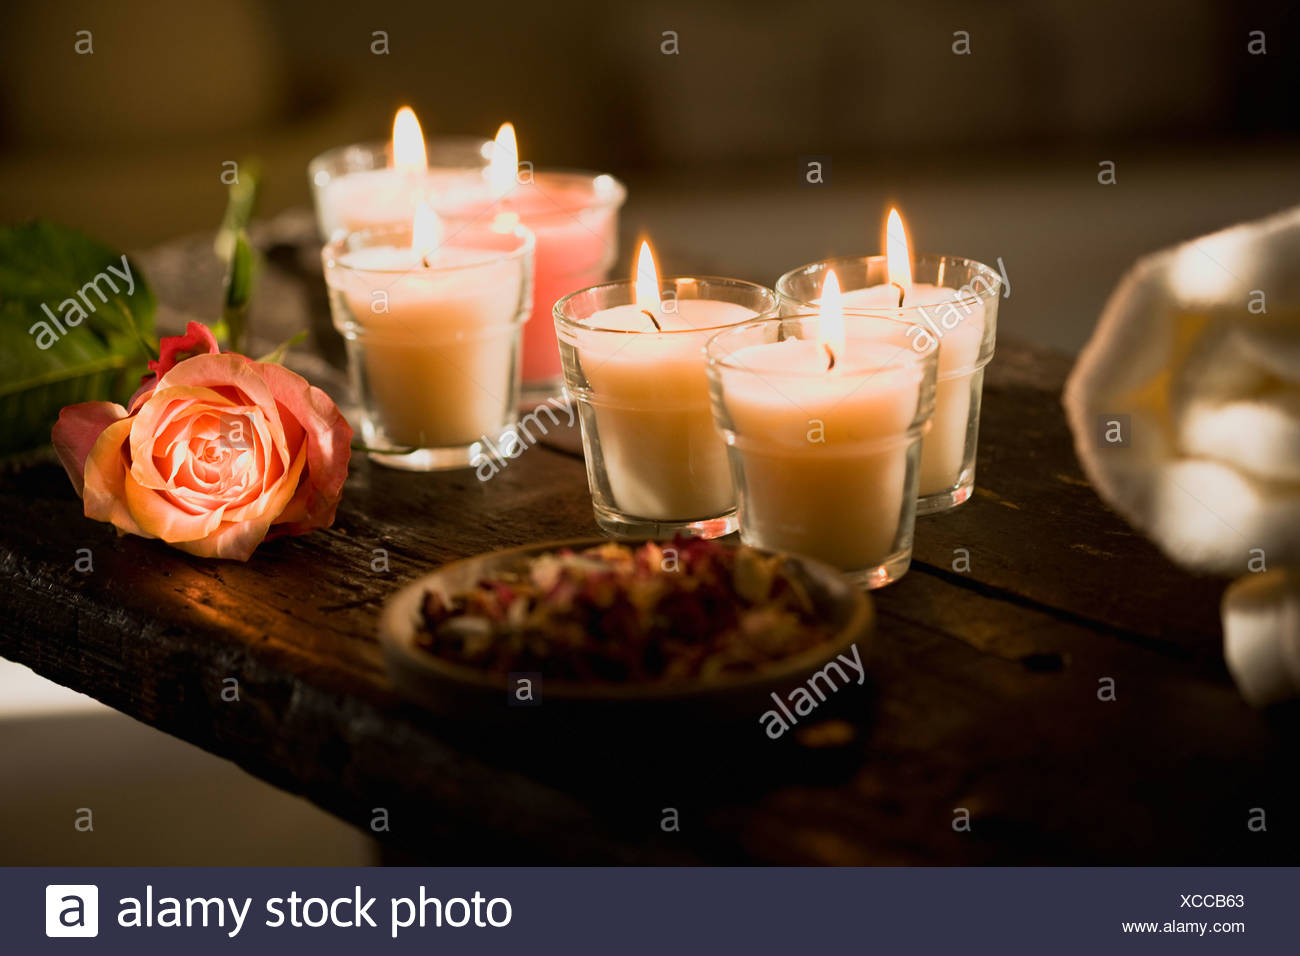 Candles and flowers stock photos candles and flowers stock images candles and flowers stock image izmirmasajfo